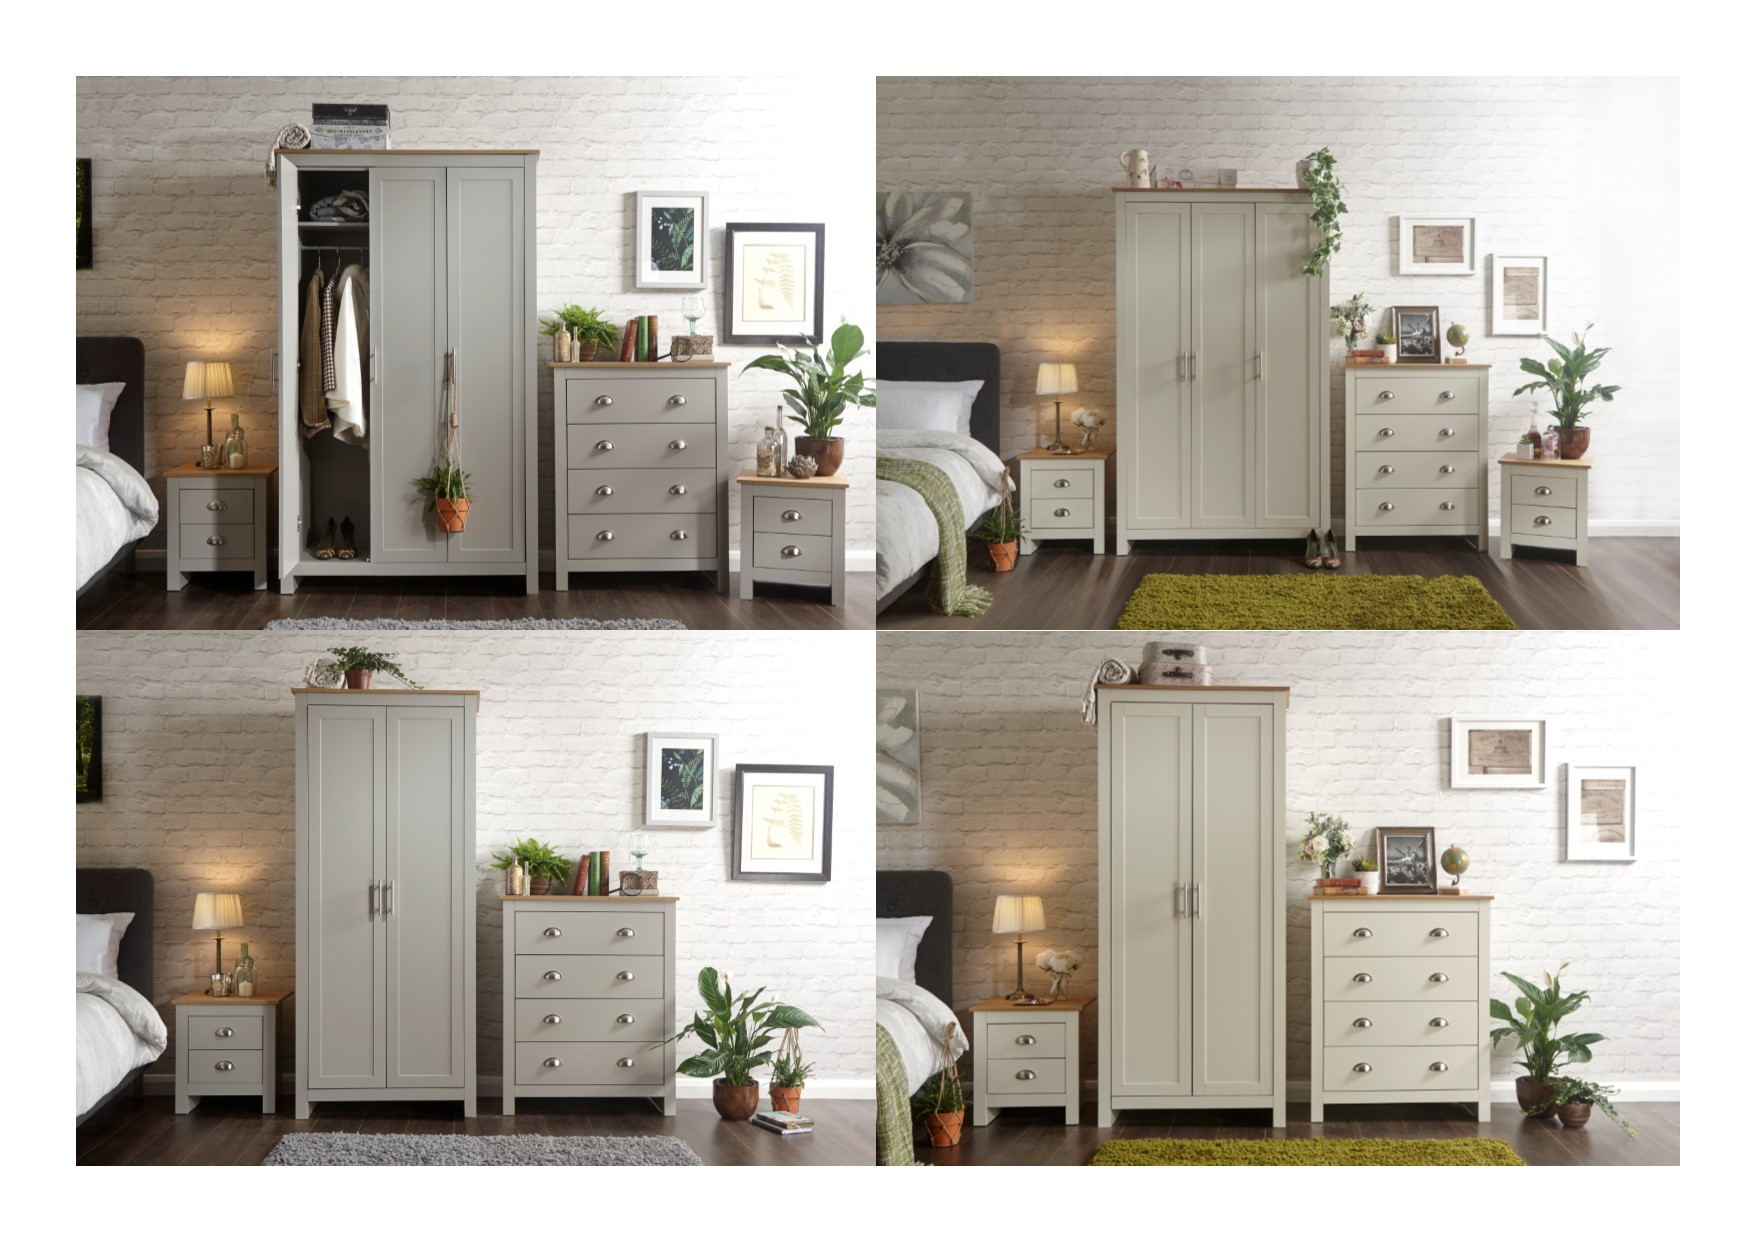 Lancaster Bedroom Furniture Sets   3 Or 4 Piece Wardrobes, Chests Of  Drawers, Bedside Table, Dressing Table, Desk